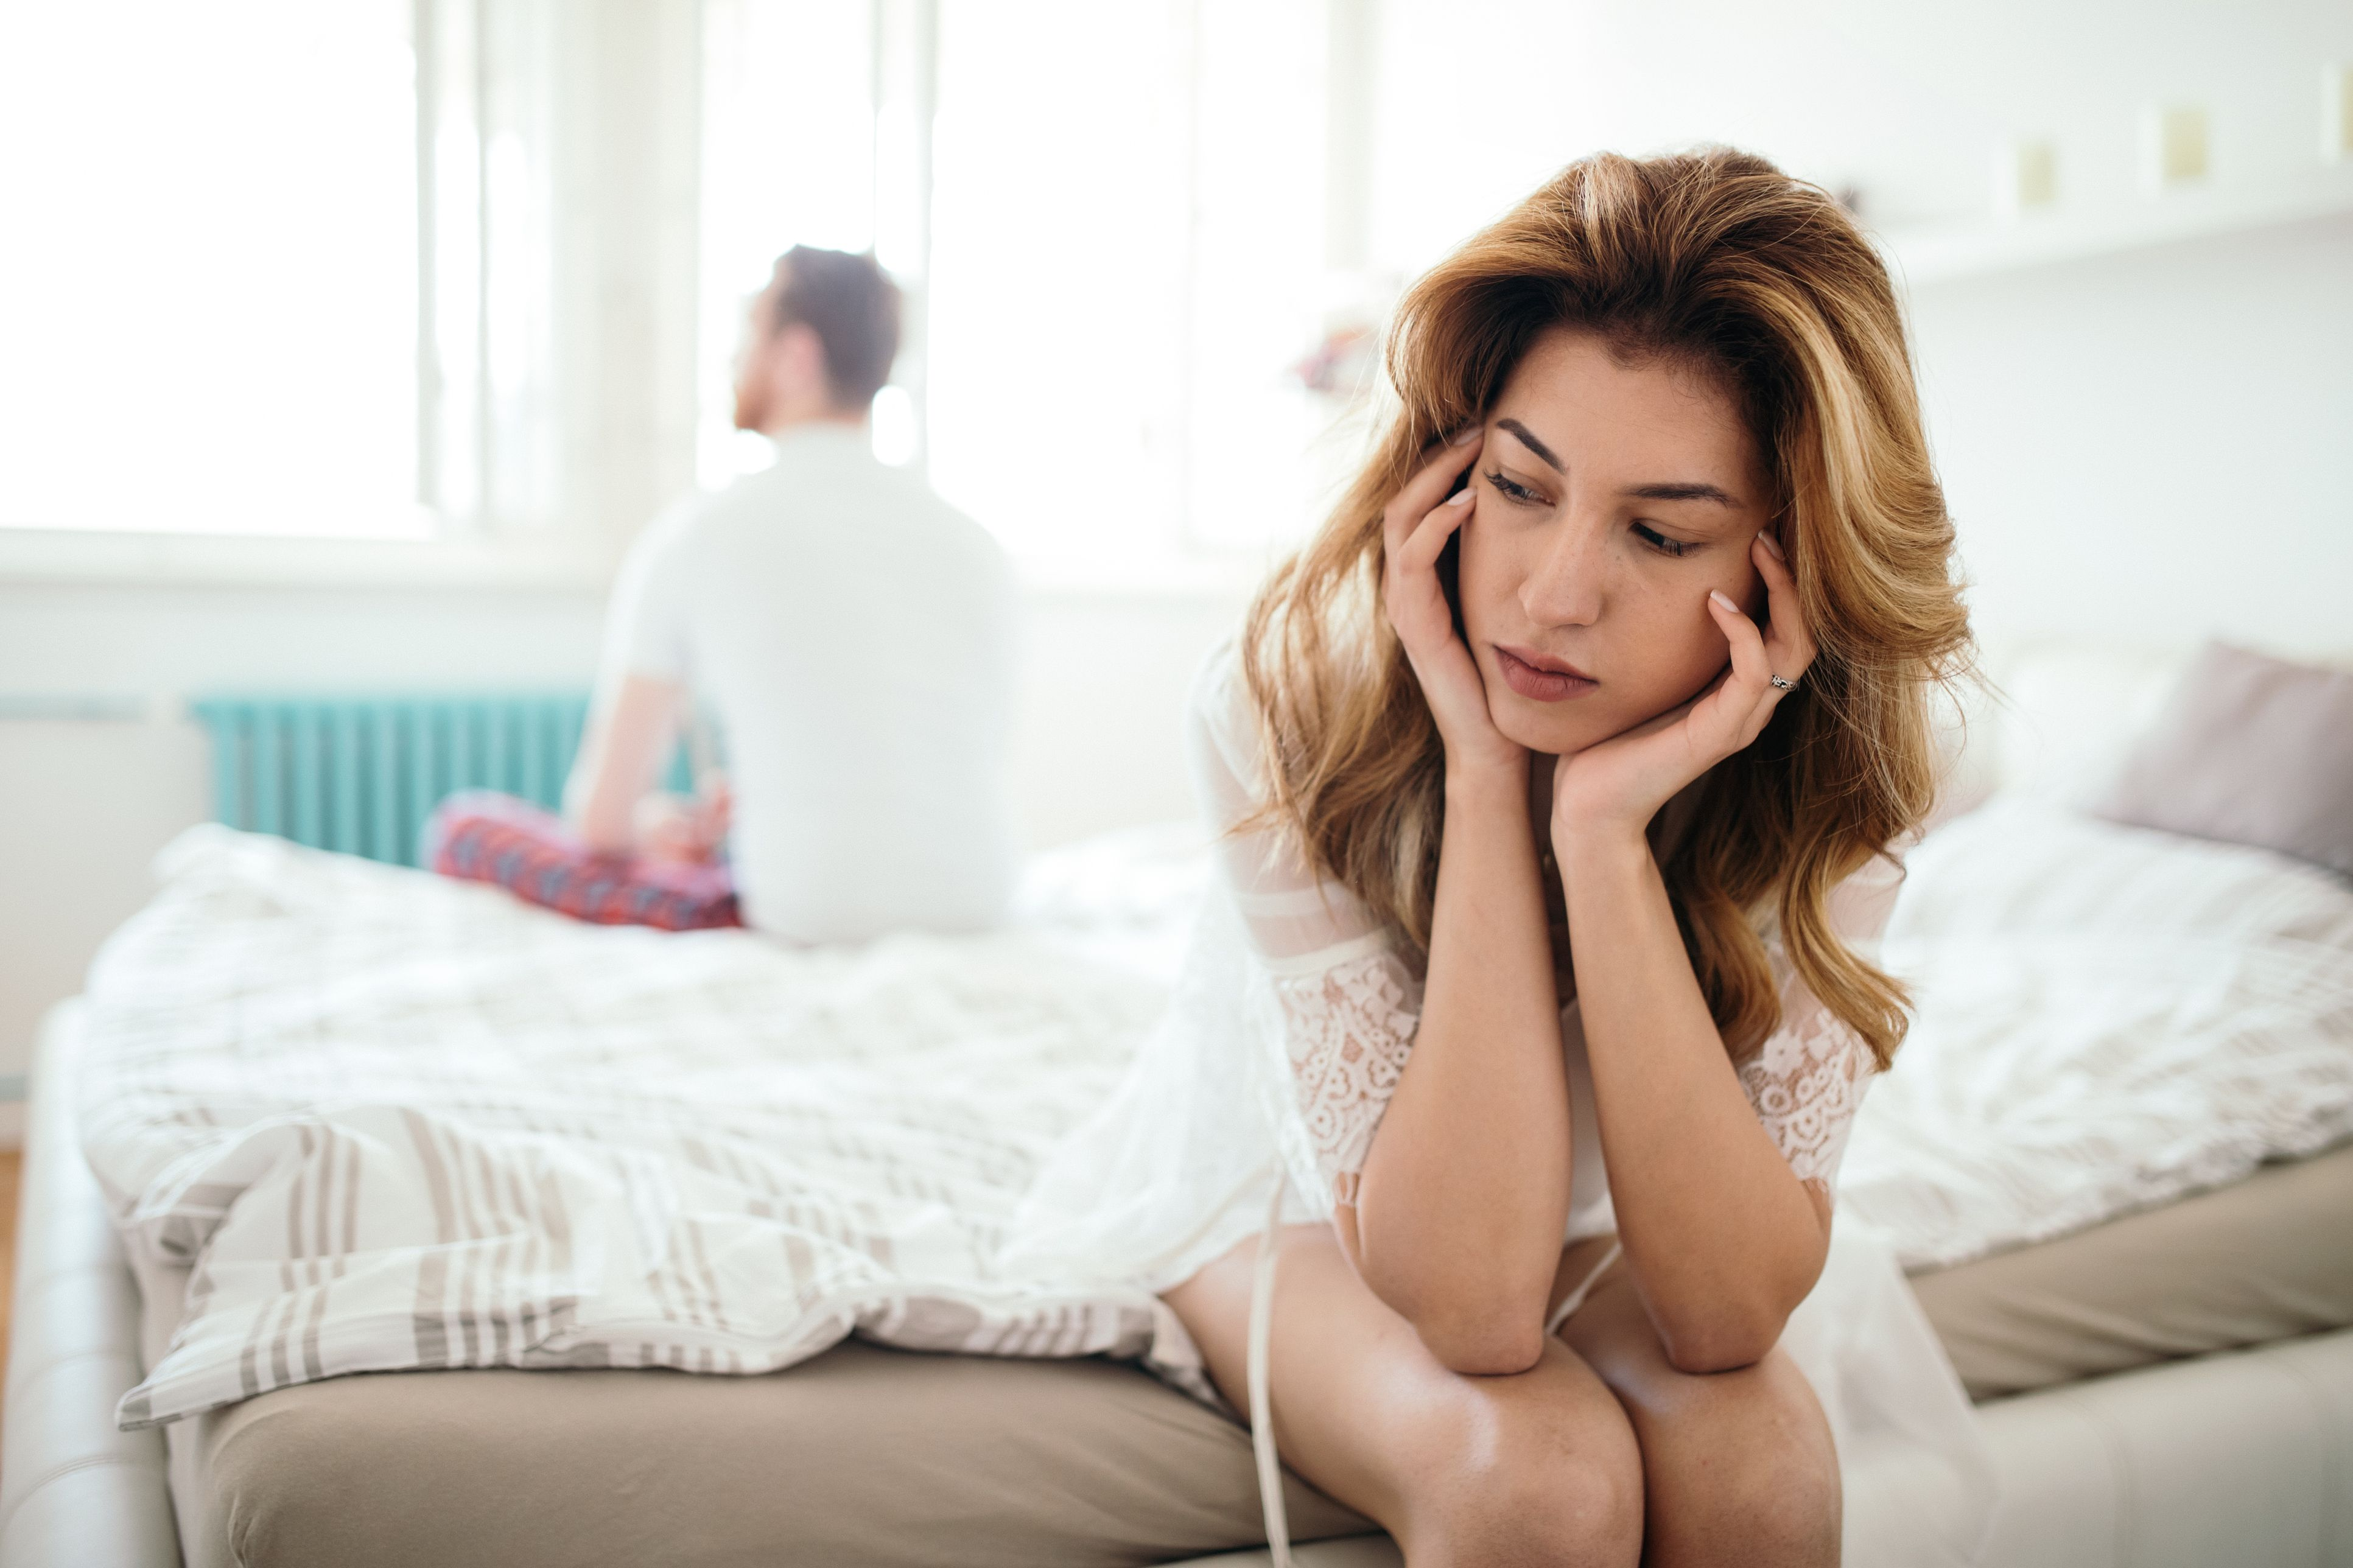 Girlfriend says sex is painful